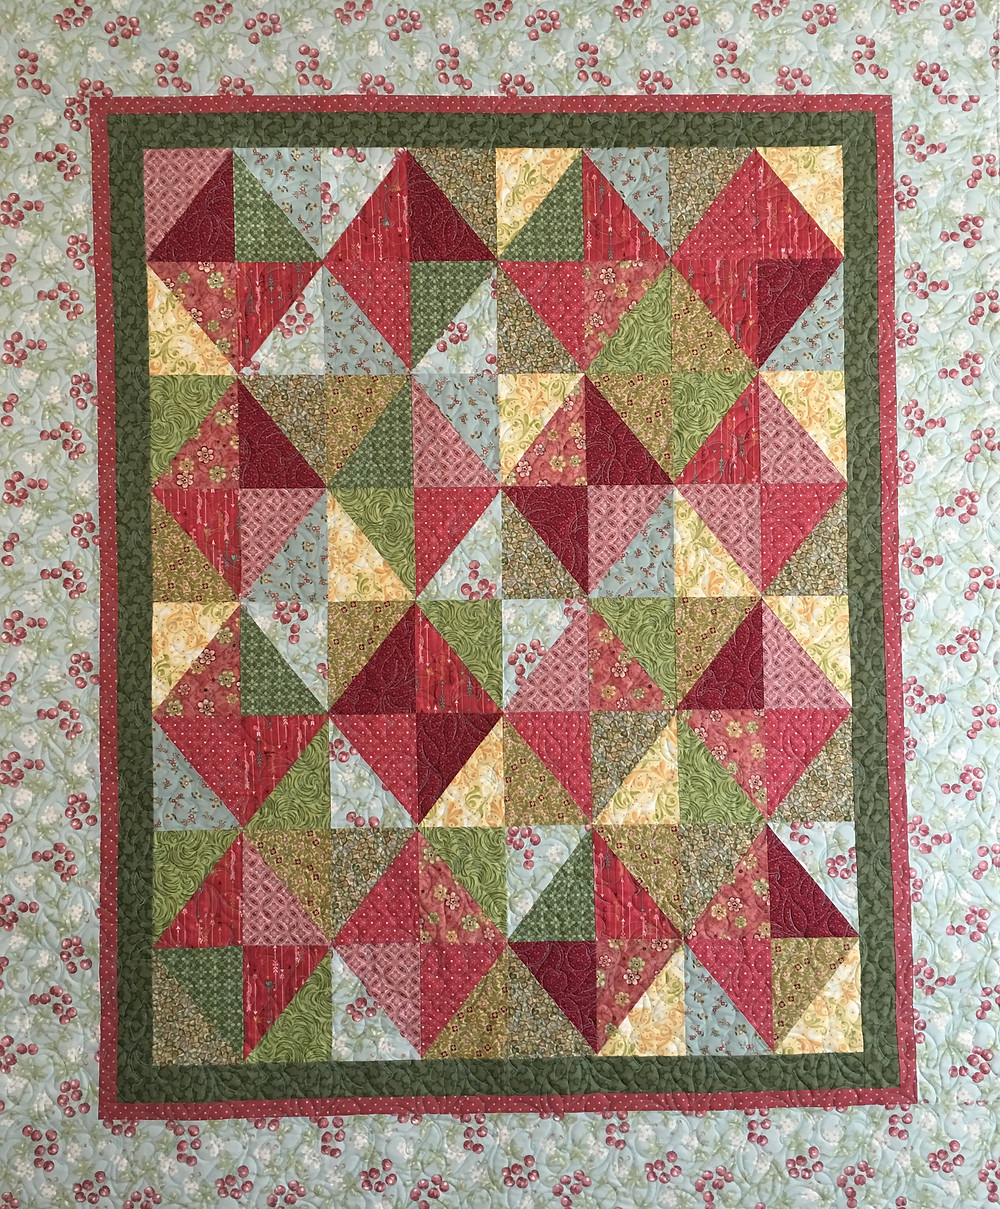 Diamonds in Squares quilt by Lori Beckers